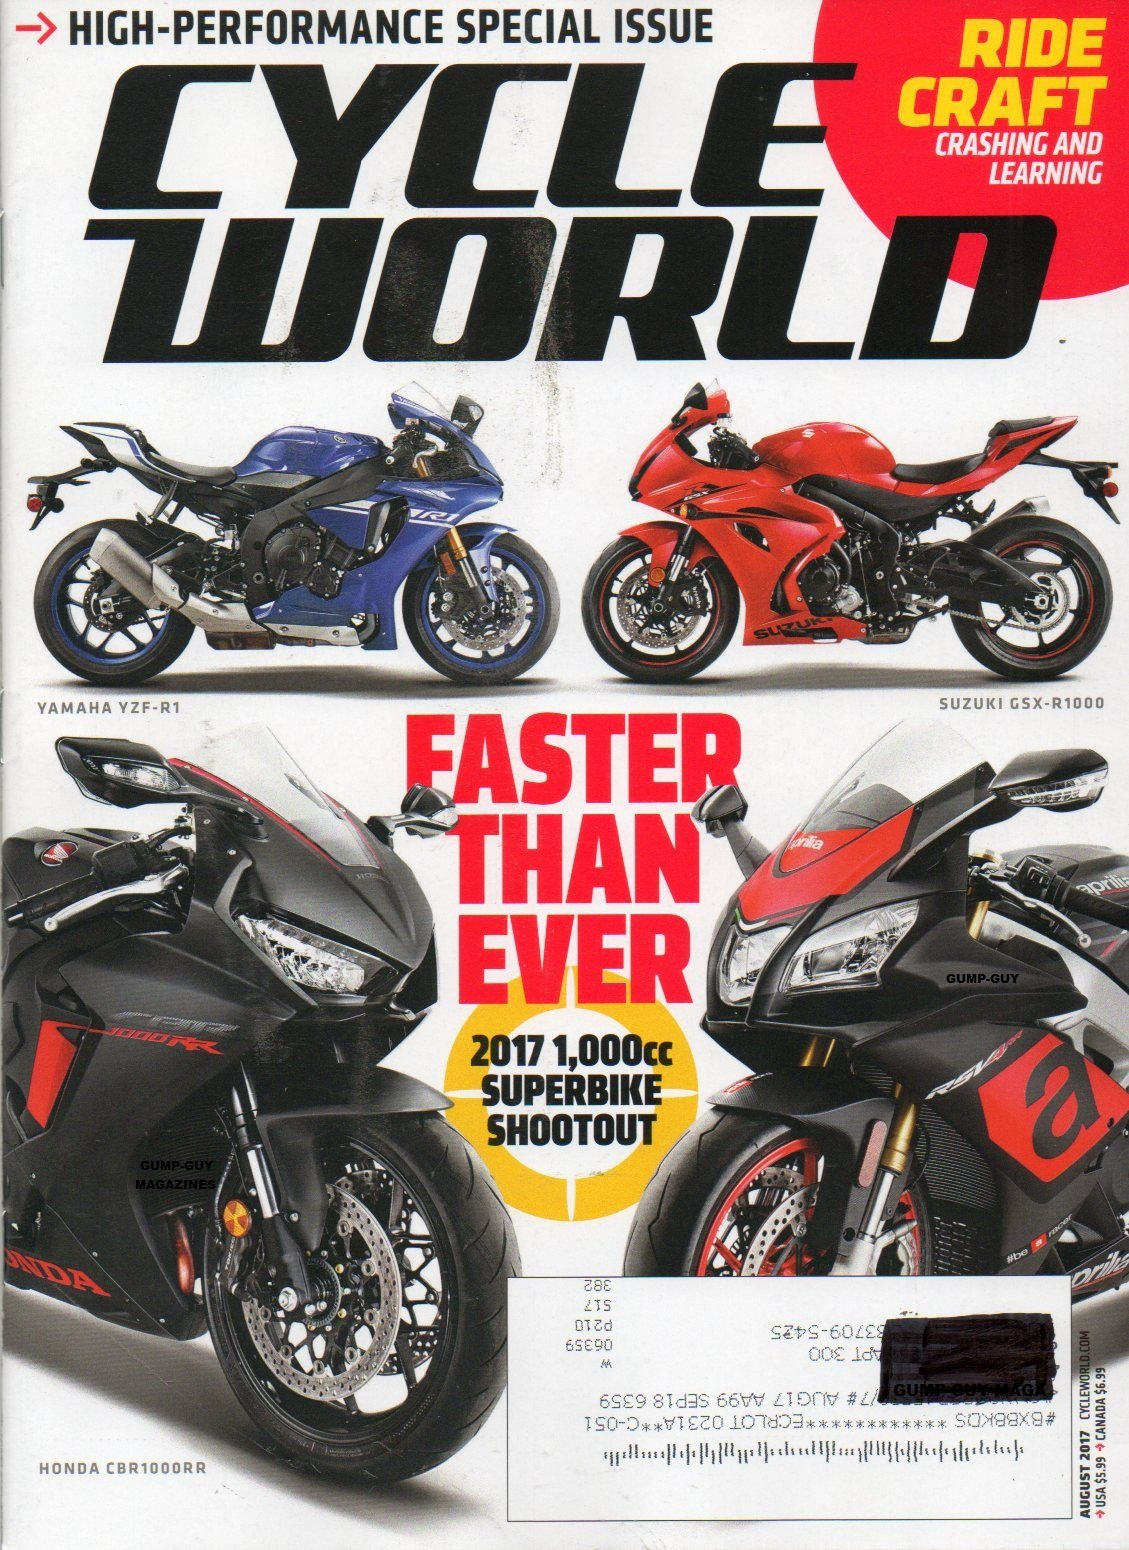 Cycle World 2017 Magazine HIGH-PERFORMANCE SPECIAL ISSUE ...